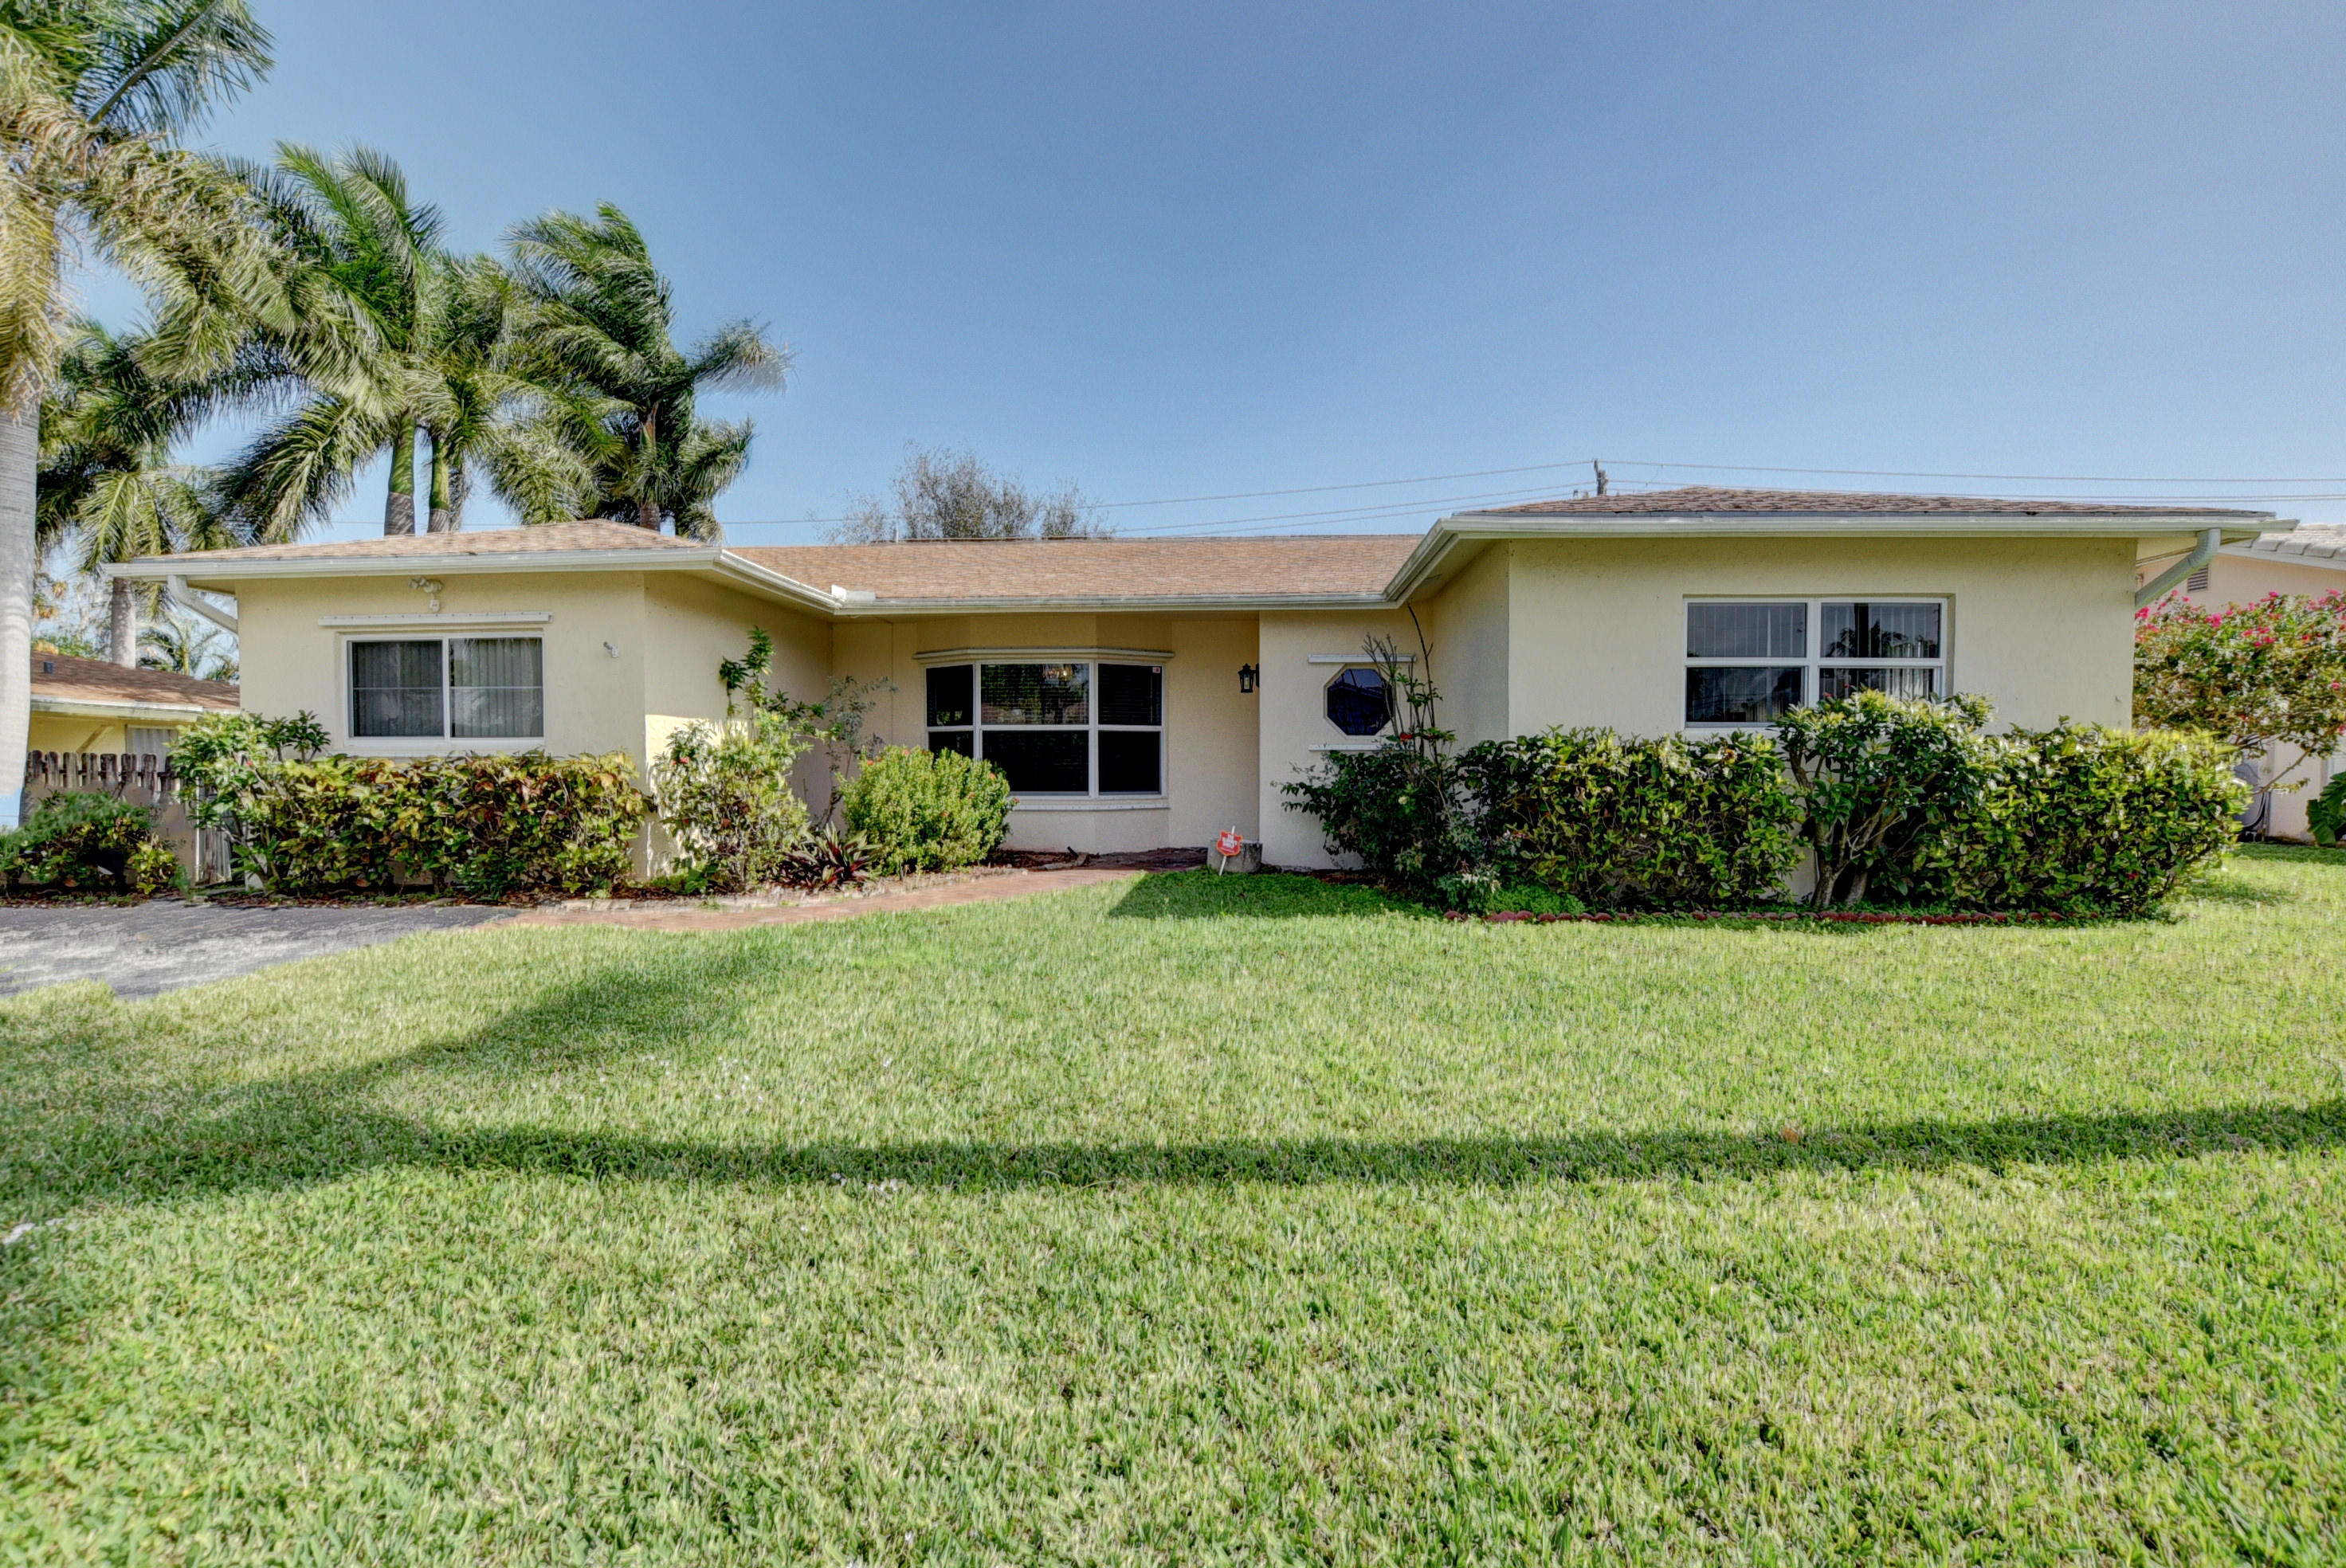 Home for sale in University Heights Boca Raton Florida